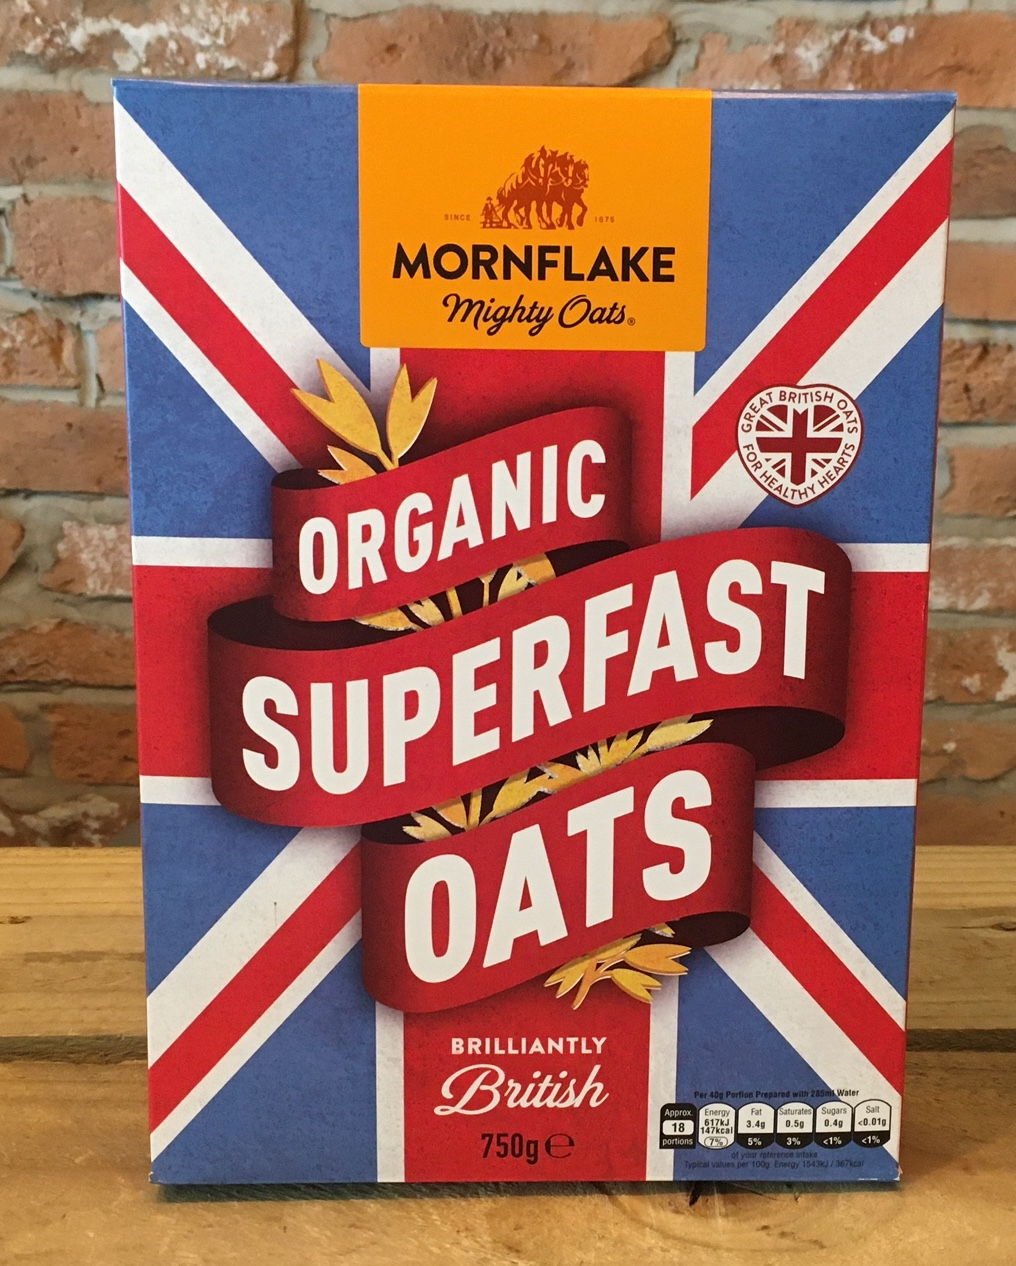 Organic Superfast Oats, 750g